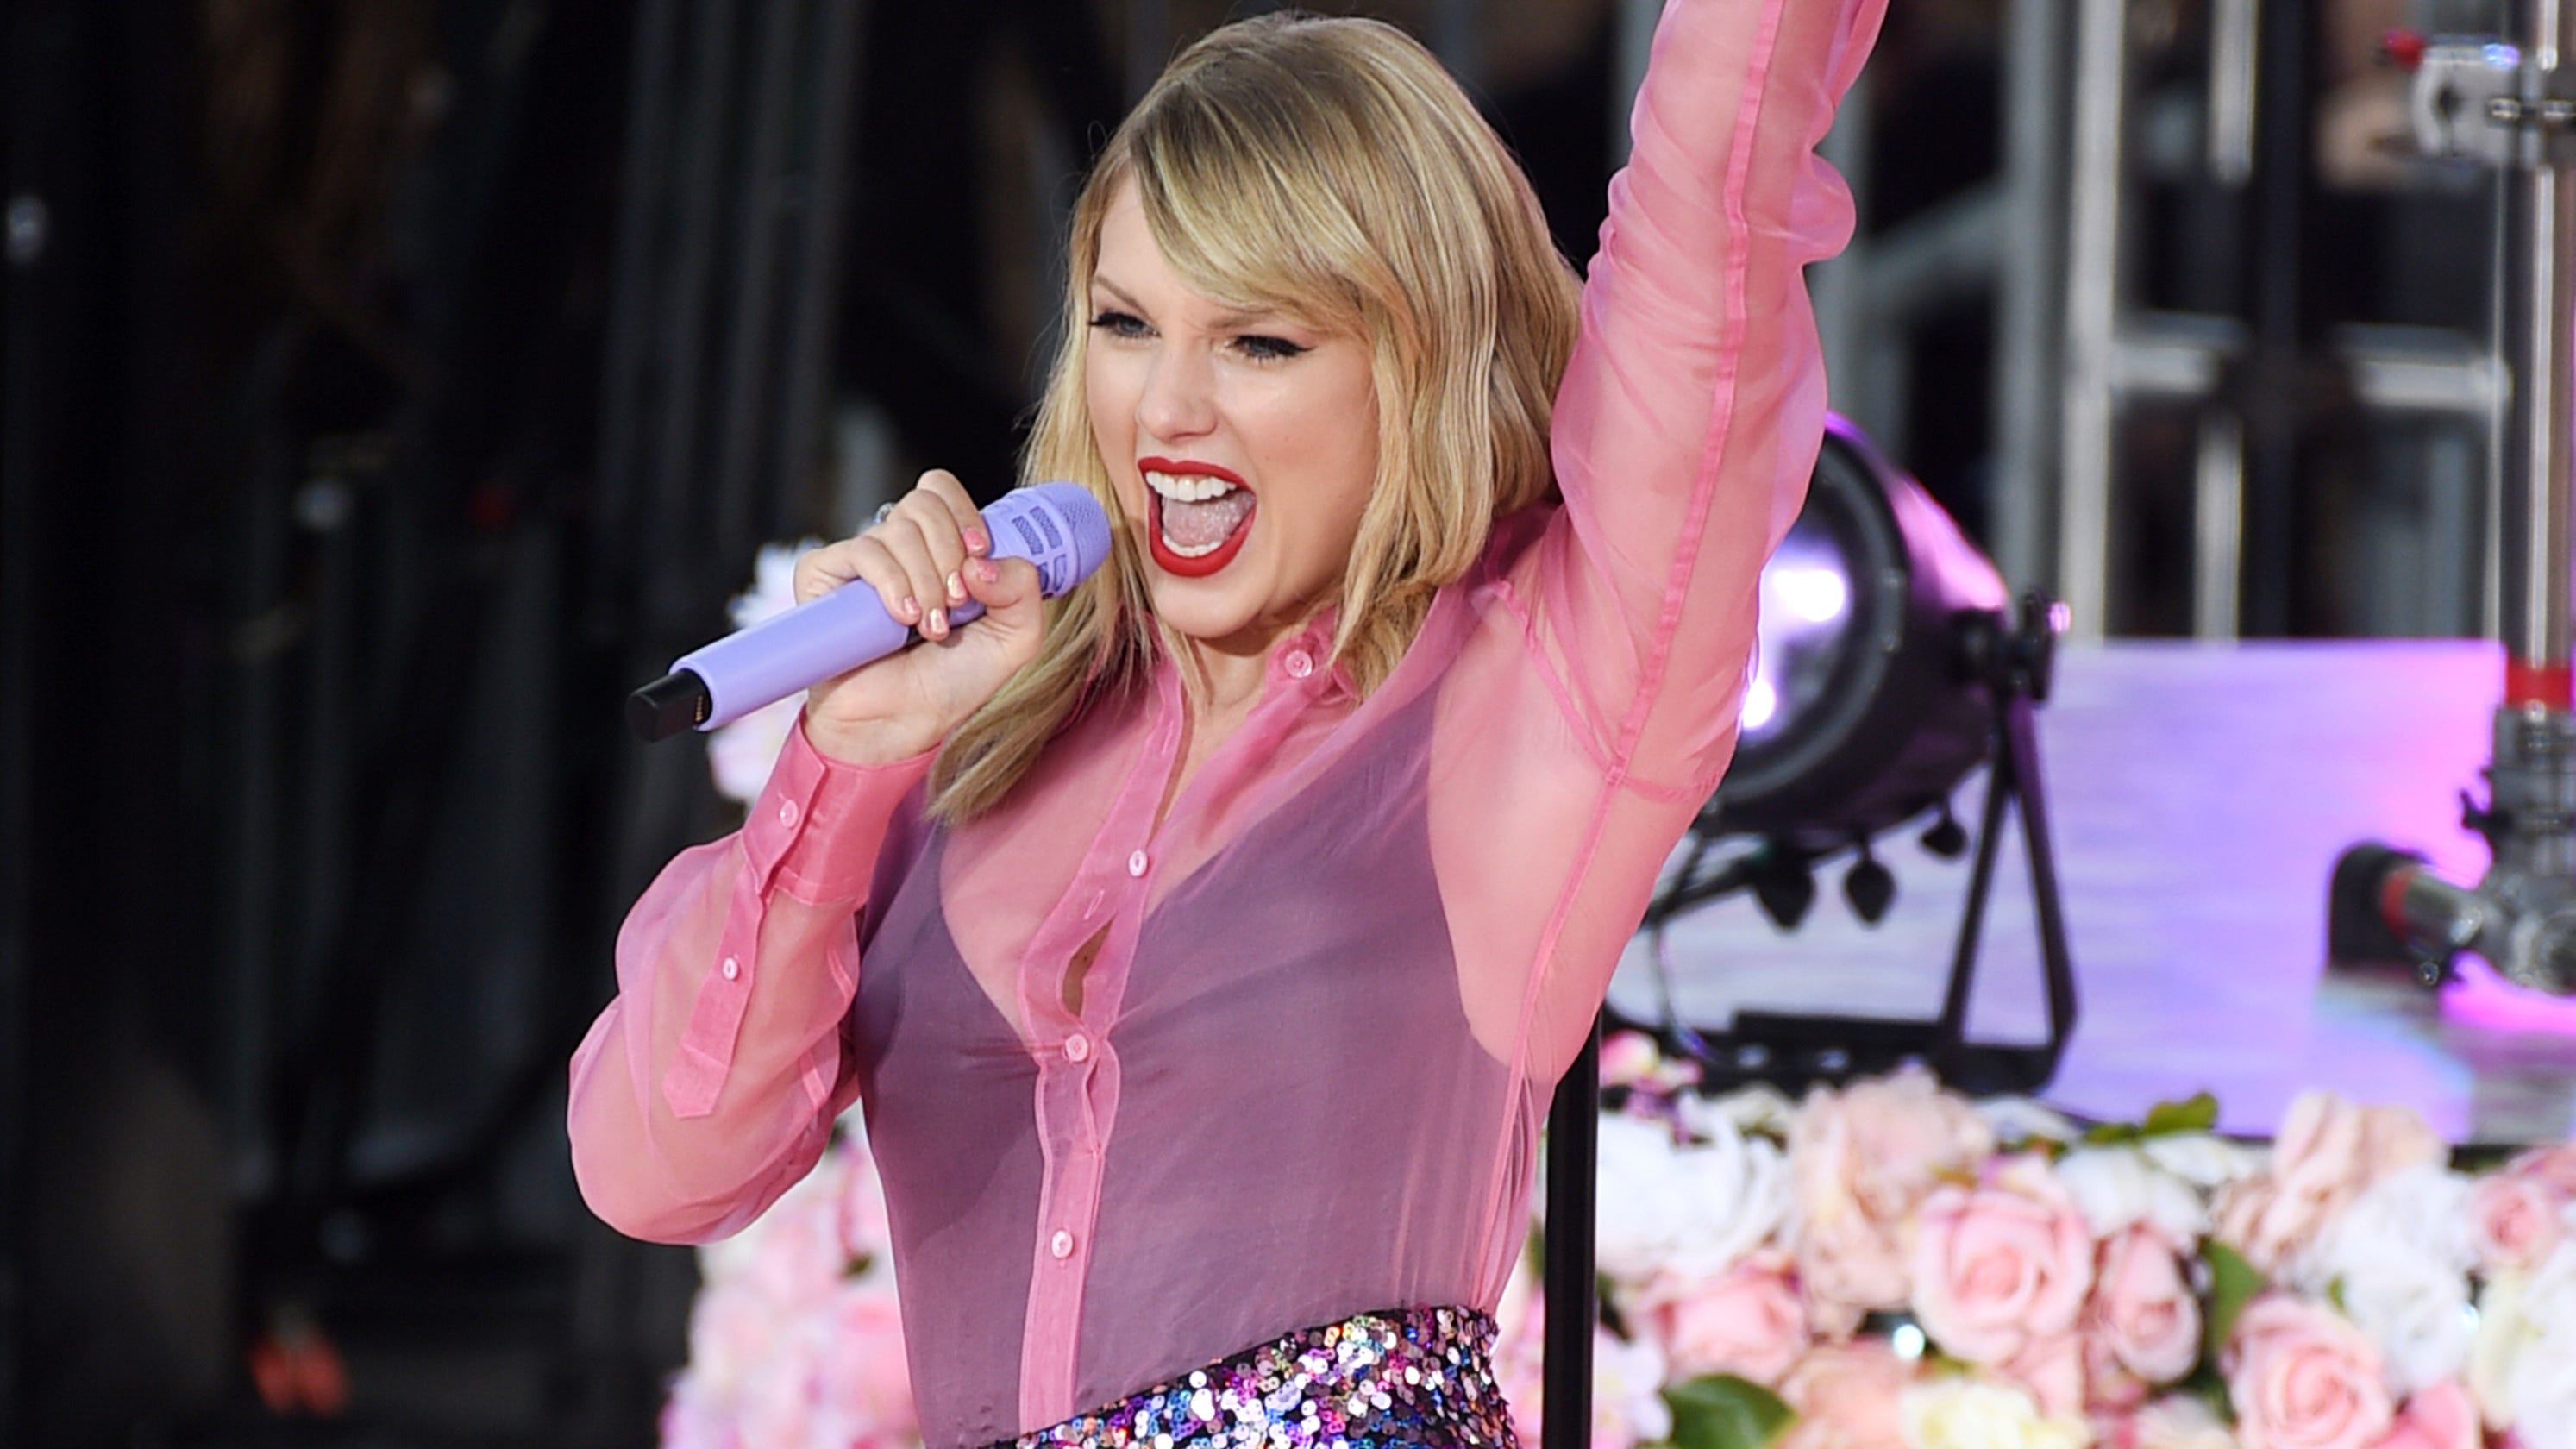 Taylor Swift 'Lover' reviews: Critics are enamored by the 'earnest,' 'romantic' new album